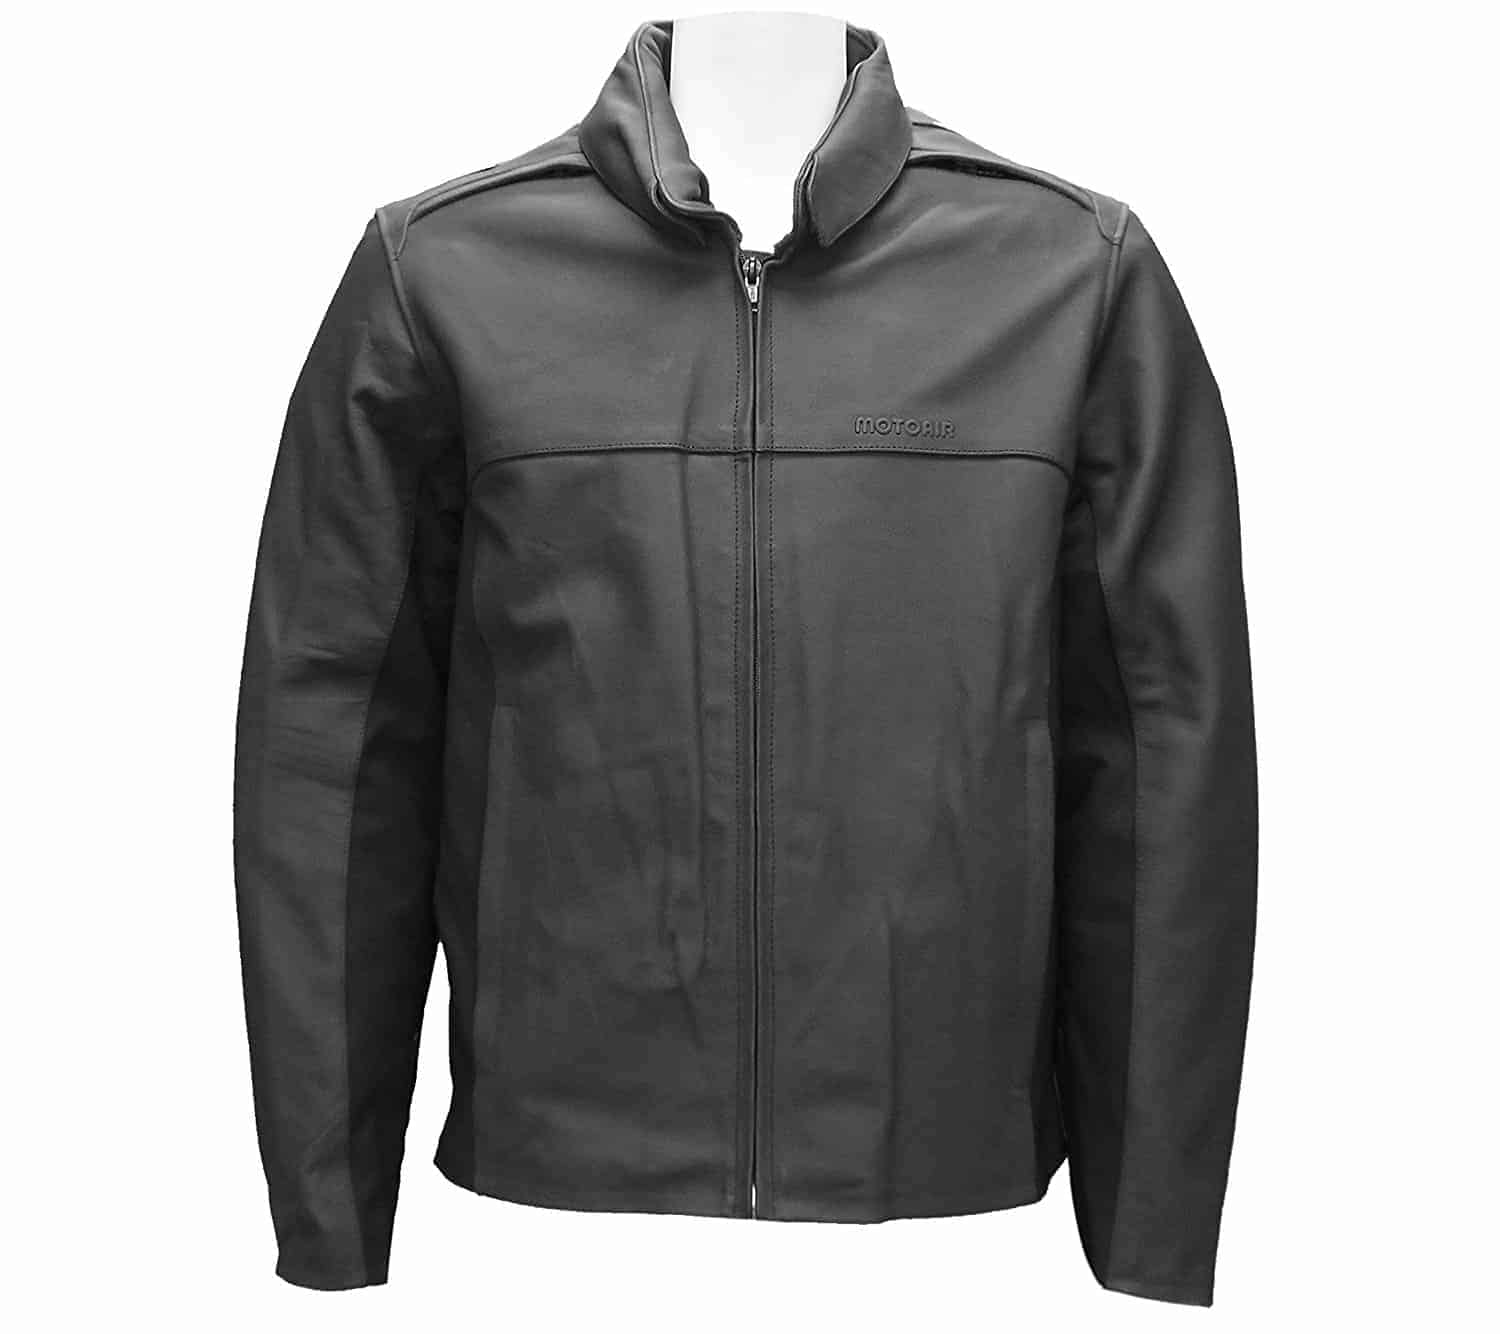 MotoAir L-300 Motorcycle Airbag Leather Jacket